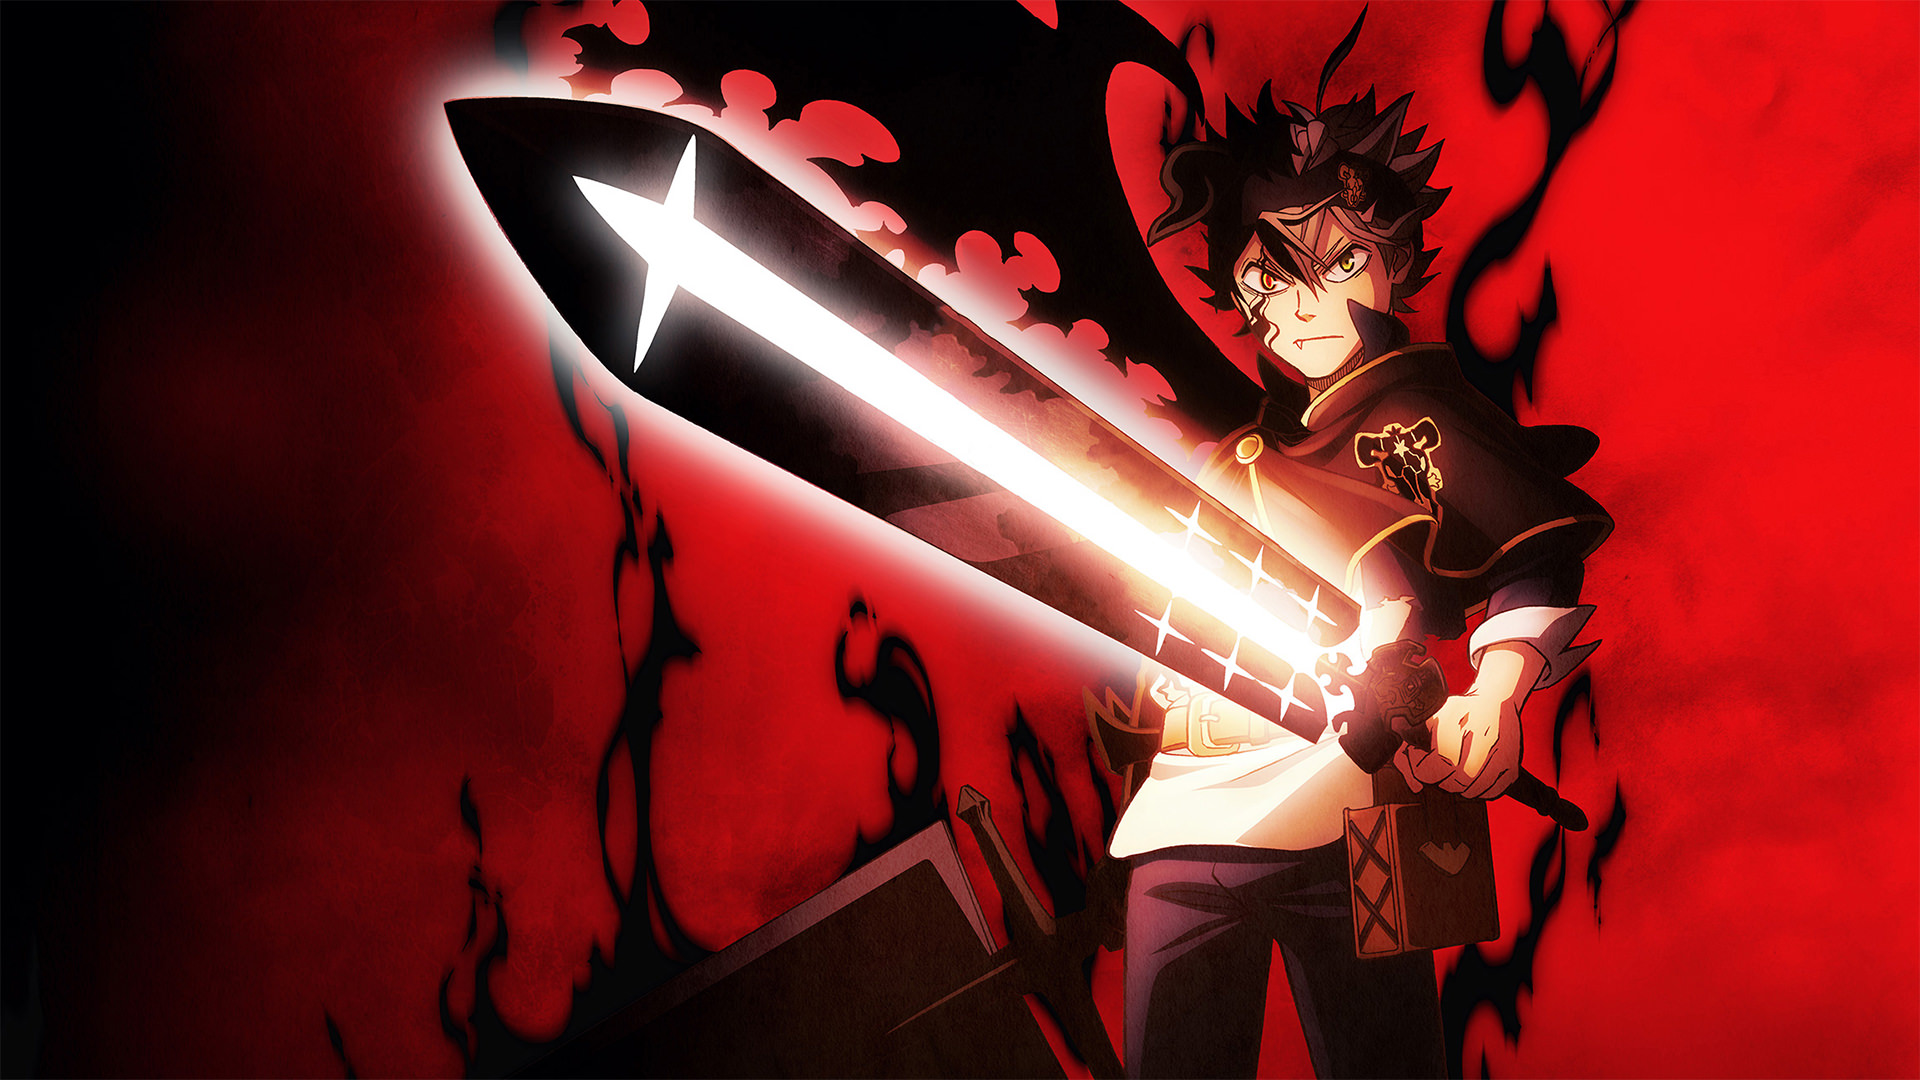 Black Clover Chapter 267 Release Date and Manga Read Online